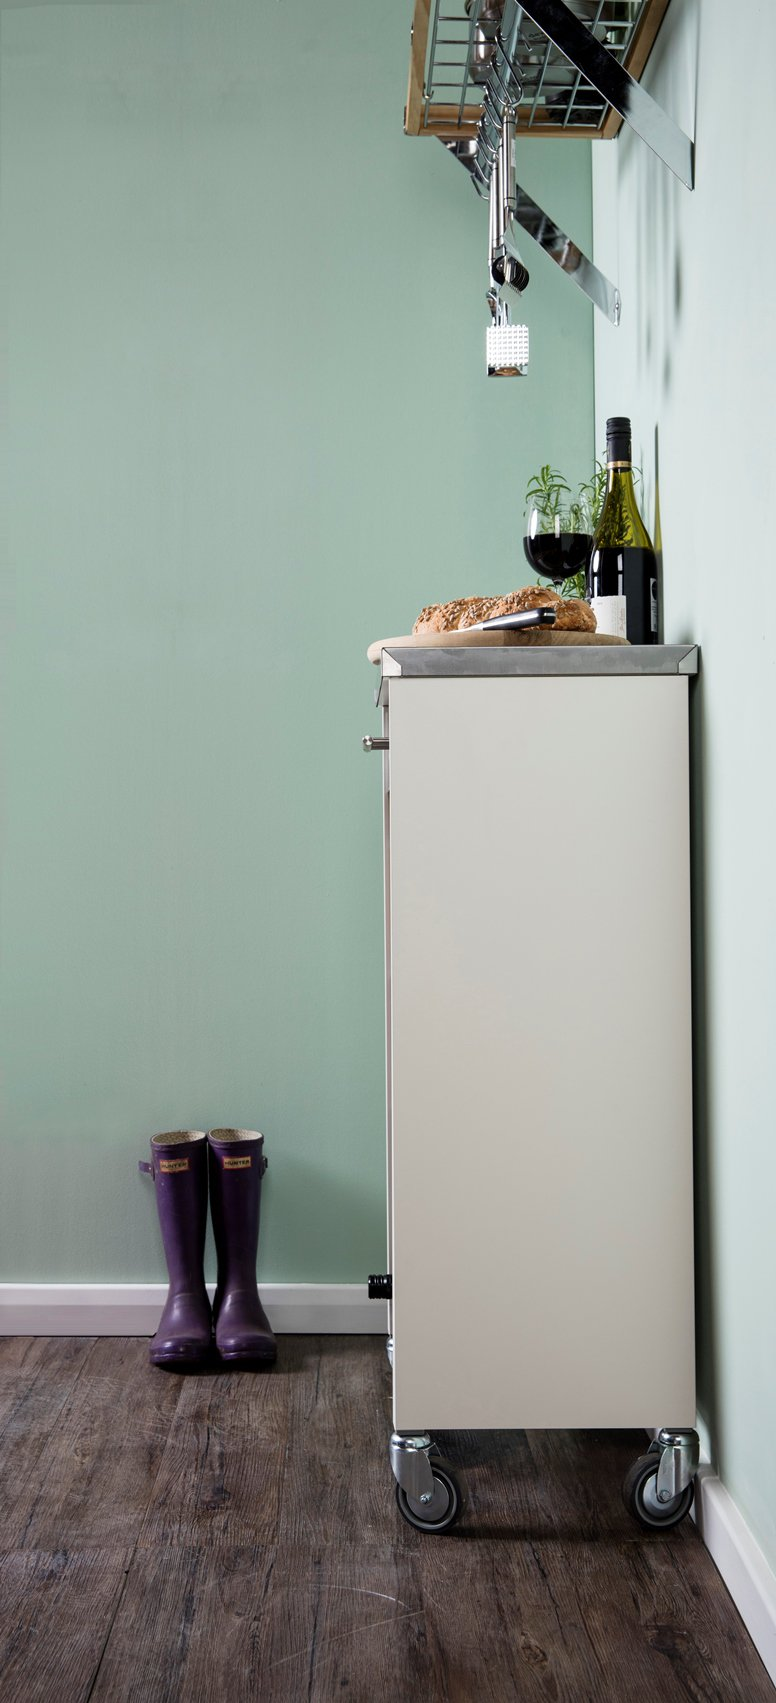 Hahn DHO Chelsea Kitchen Trolley in Stainless Steel & Ivory White at ...